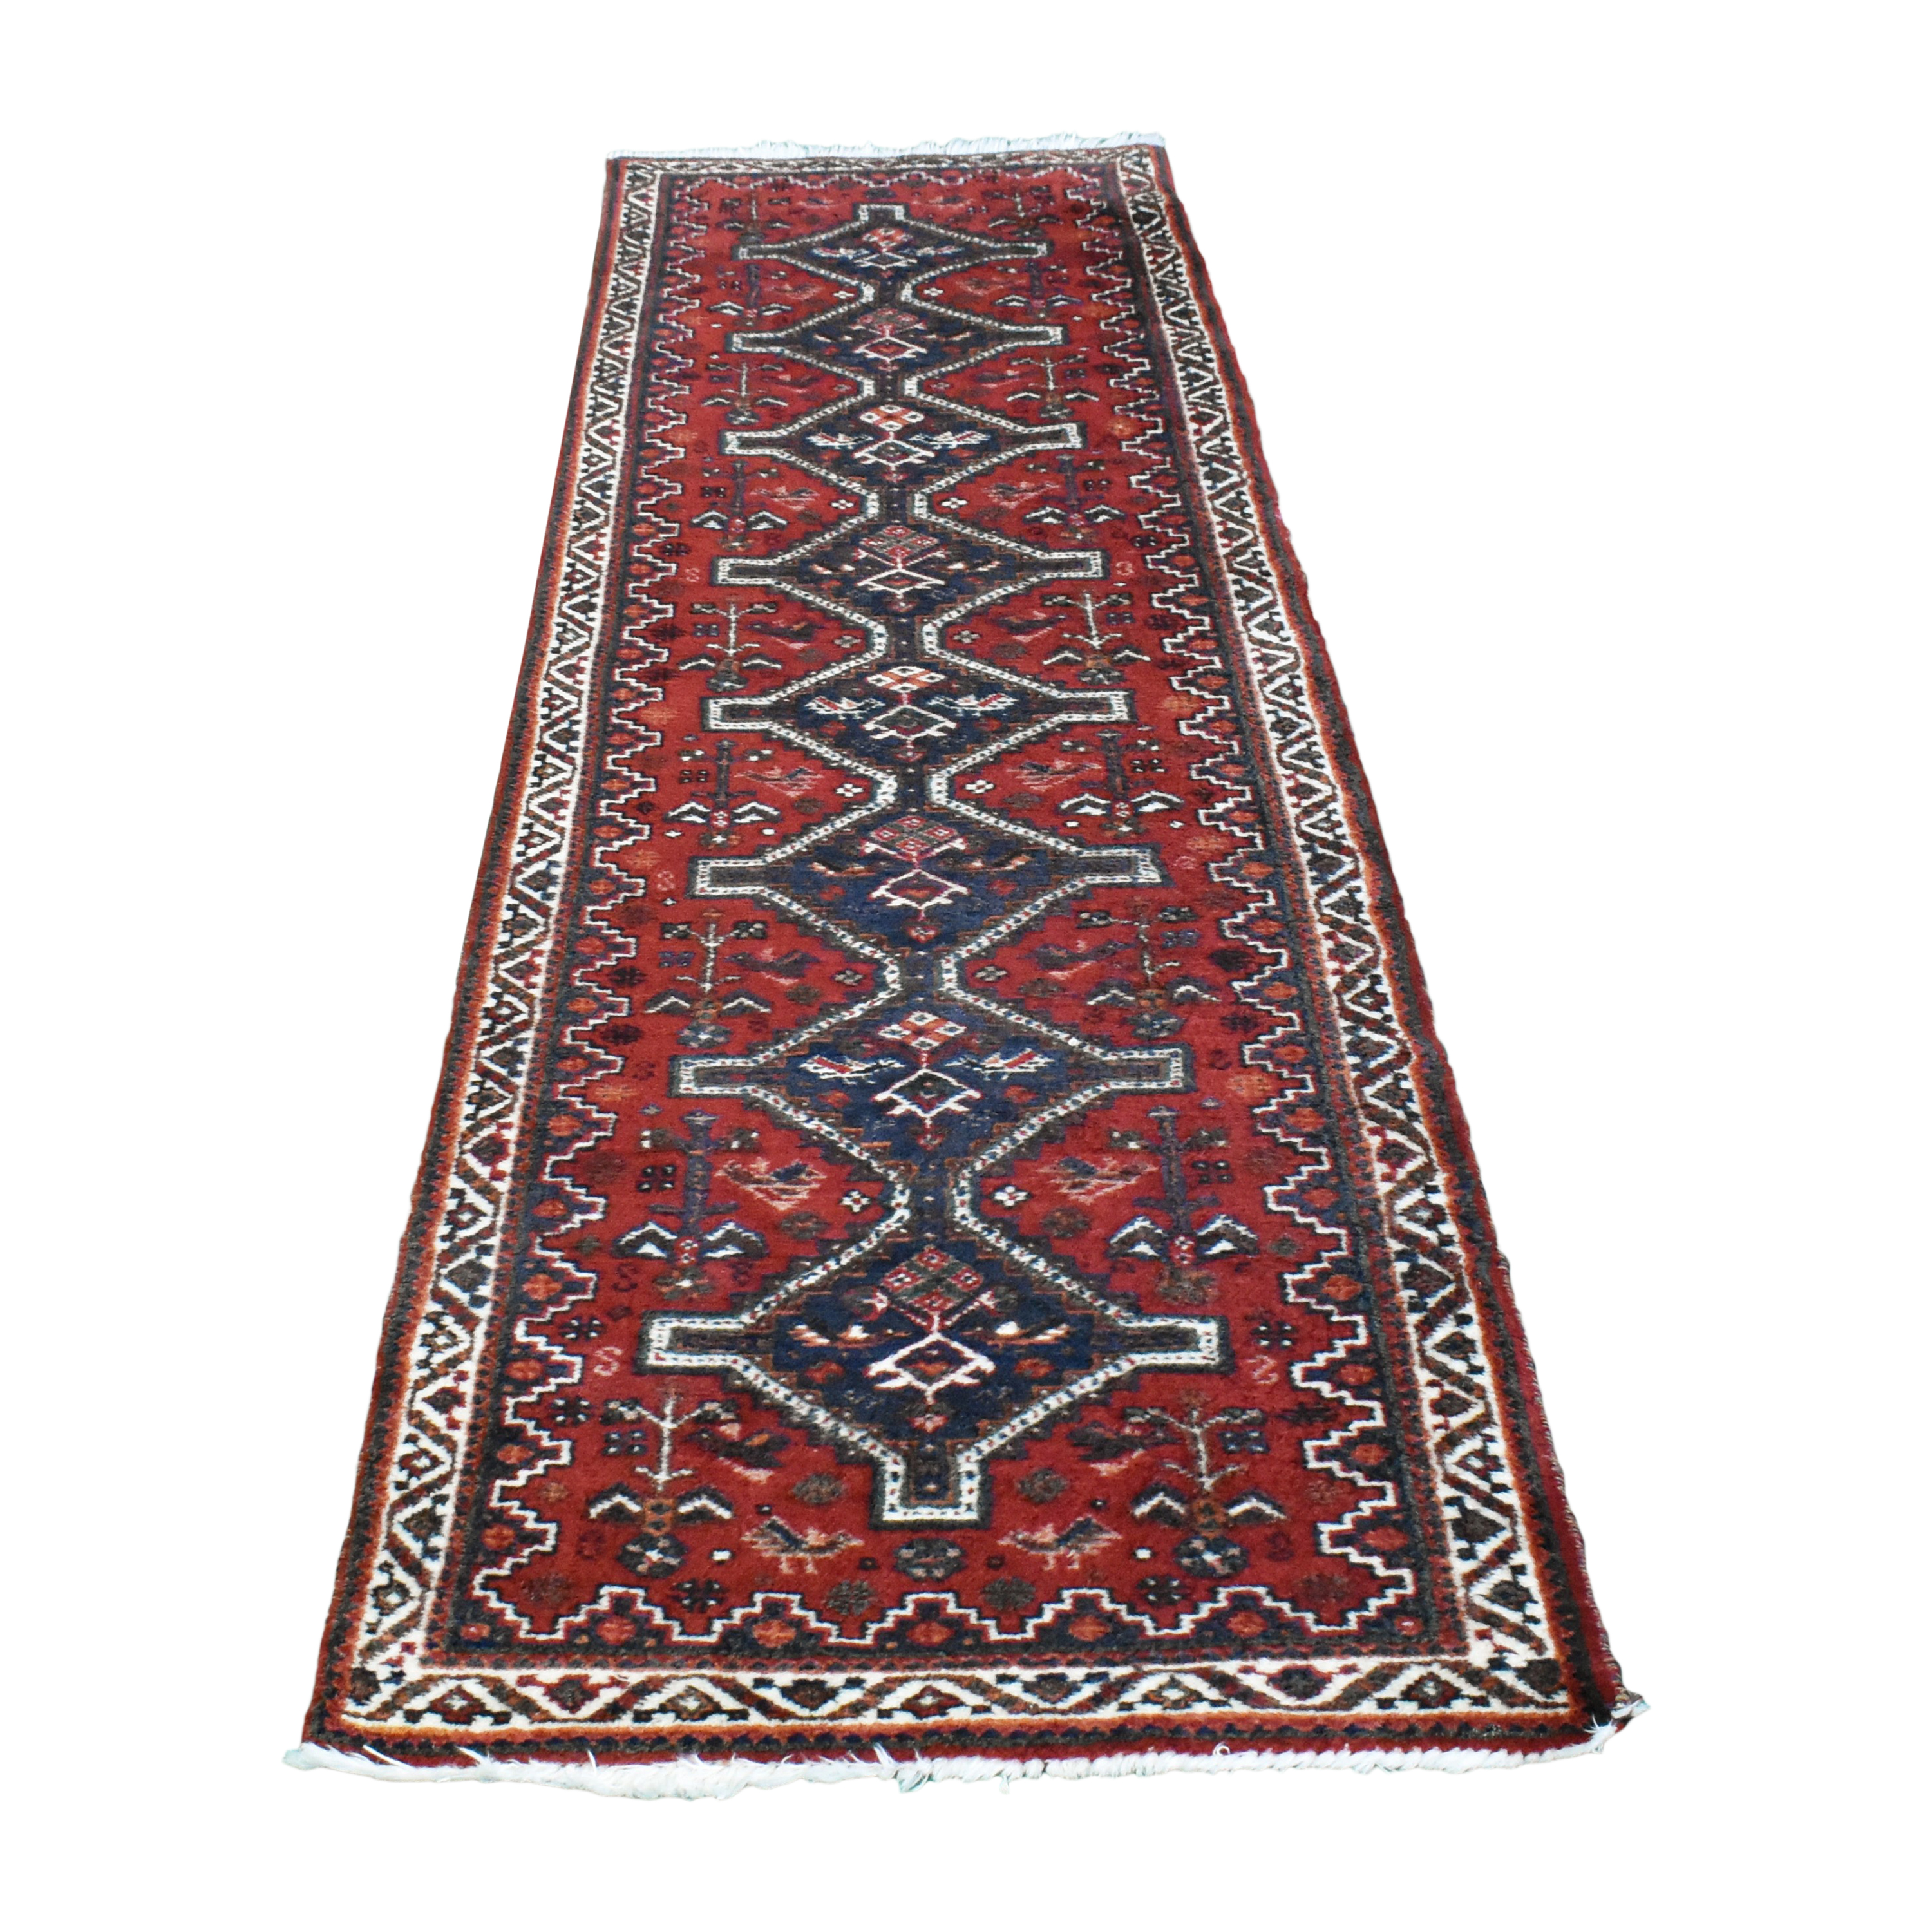 Patterned Runner second hand